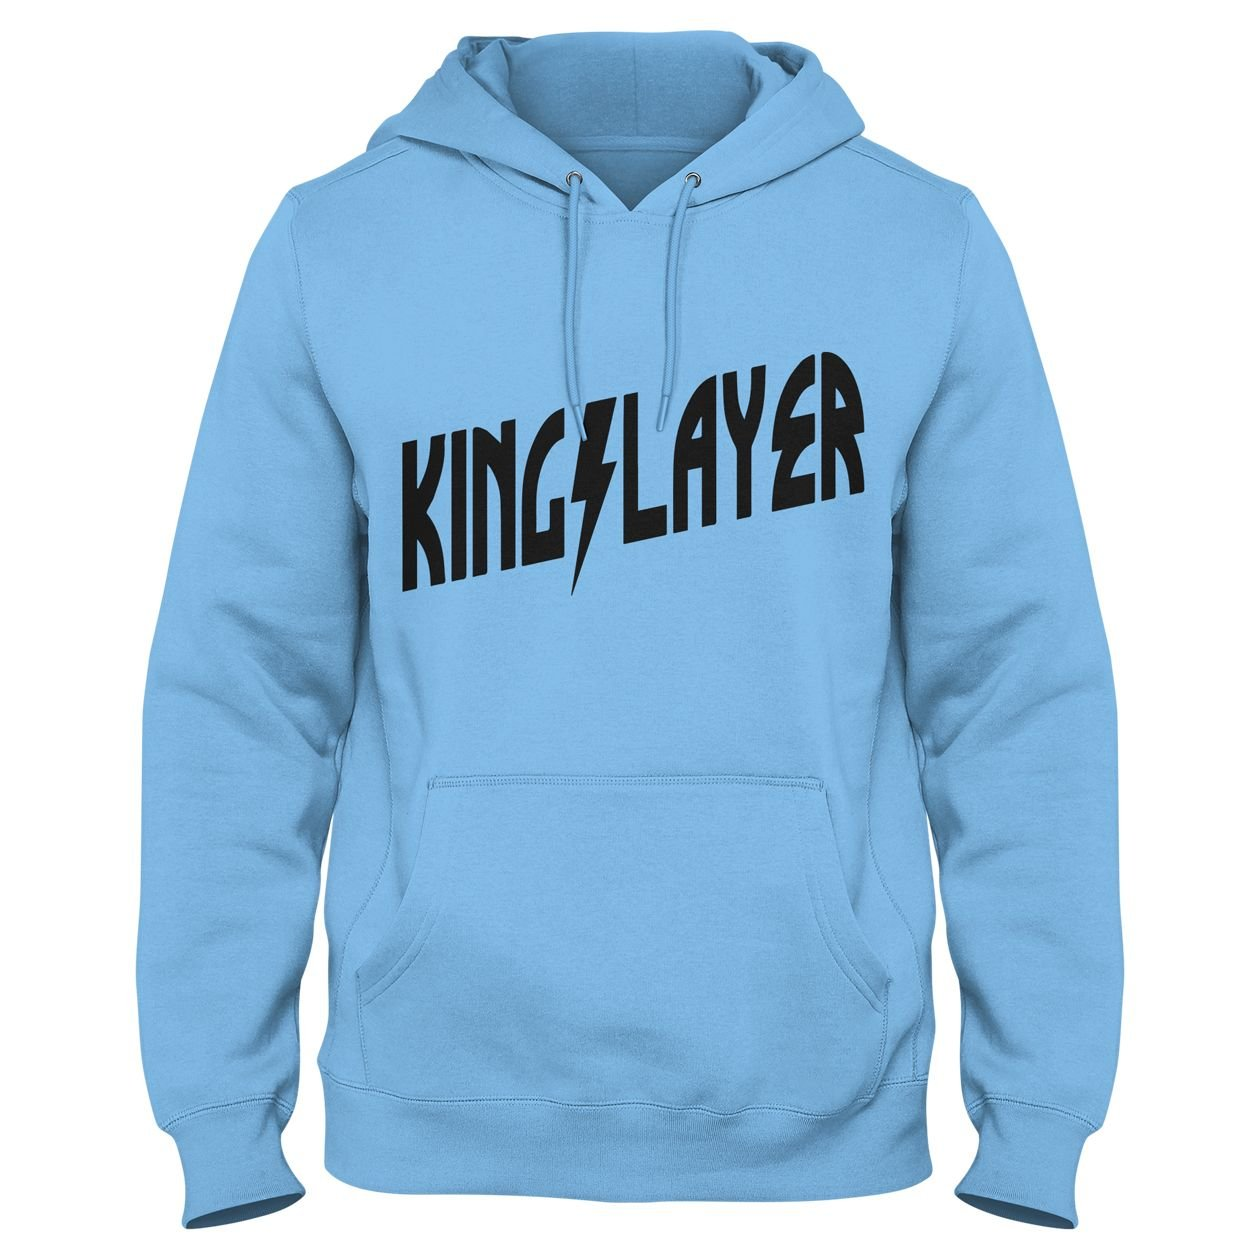 Hoodie Kingslayer Got Inspired Cool Retro Lannister Boys Top